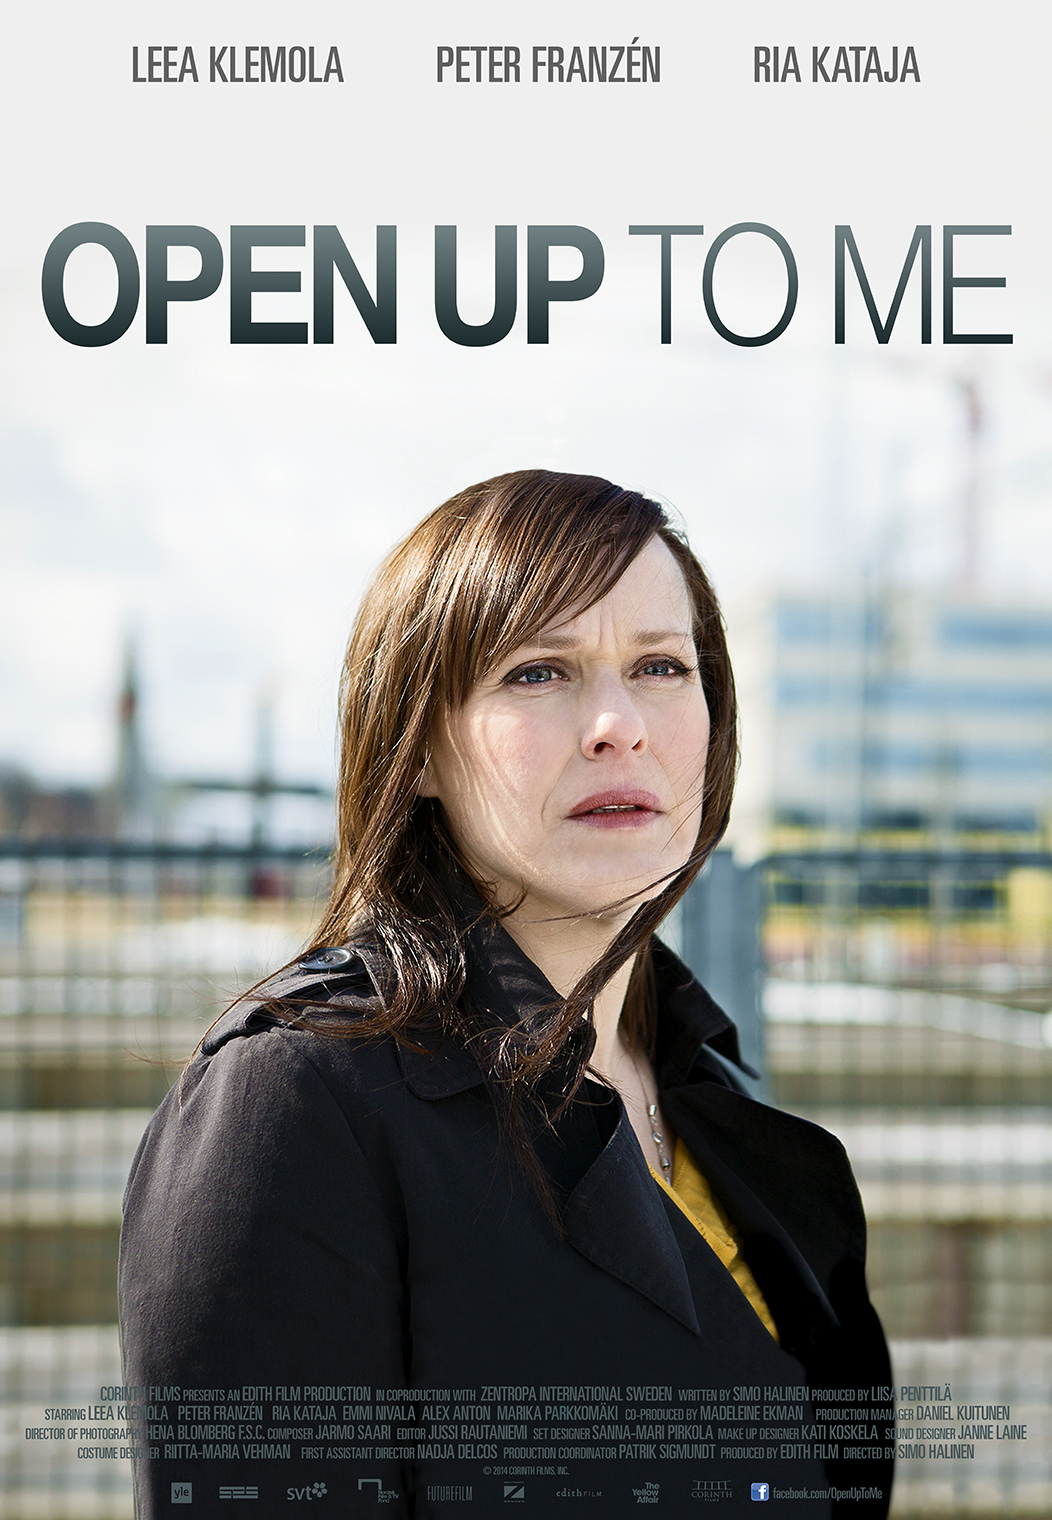 Open Up to Me poster art